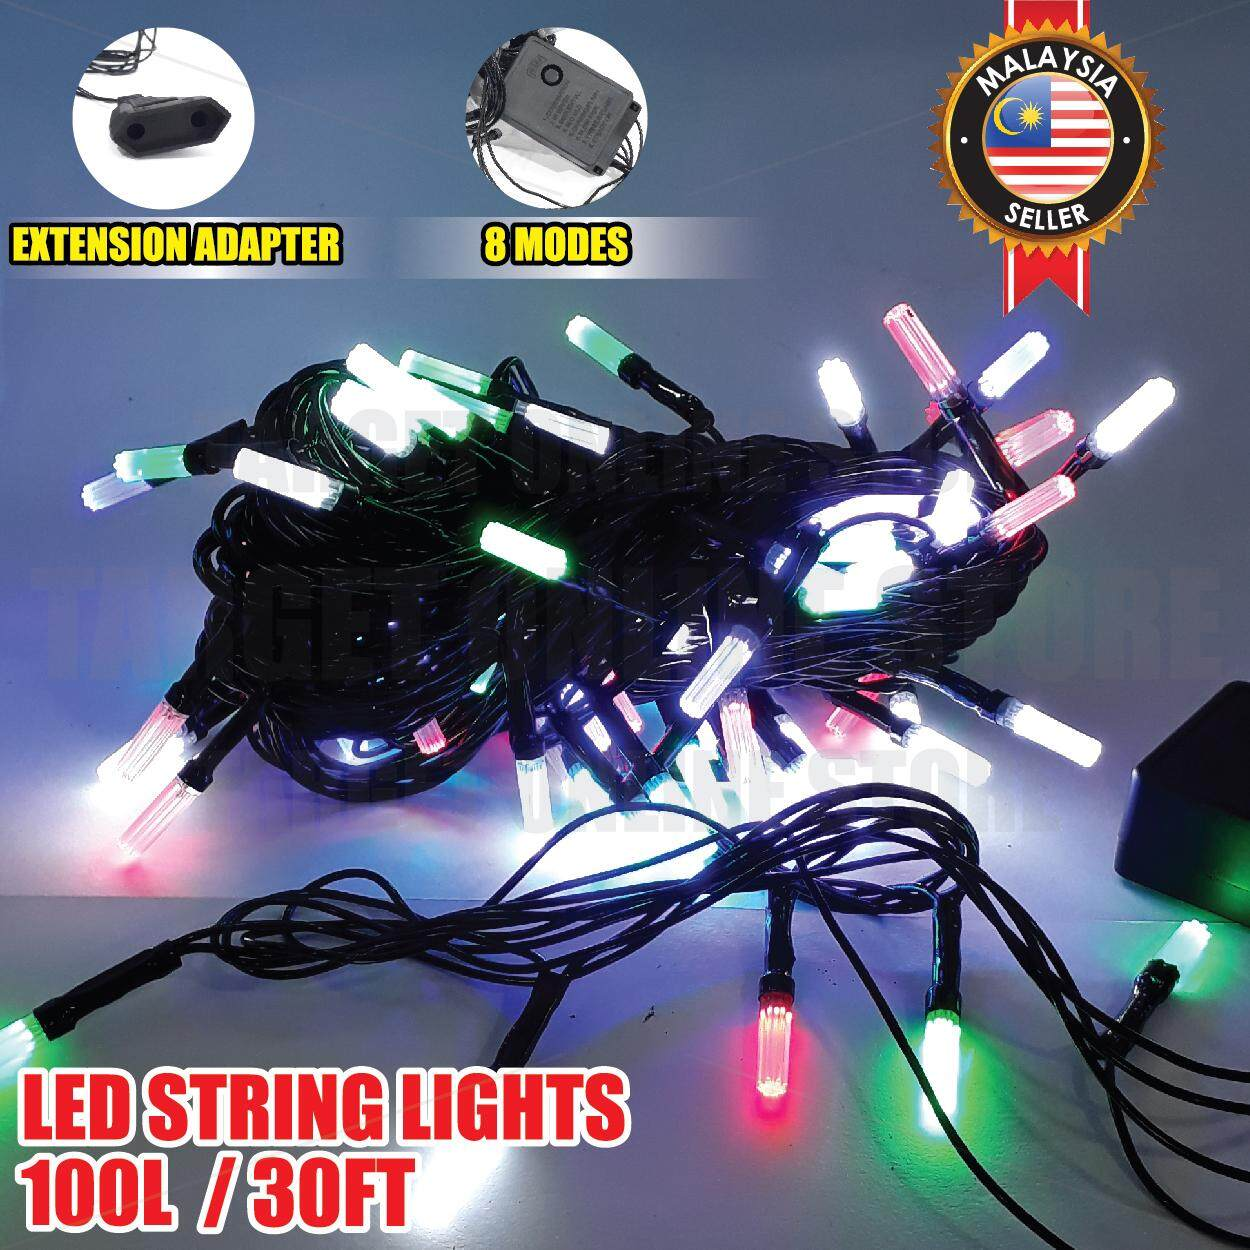 Home Led Strip Lighting Buy At Best Price Making Parts And Wiring Supplies Craft Kits Night Light Multi Coloured Raya Eid Christmas Twinkle String 100l 30ft